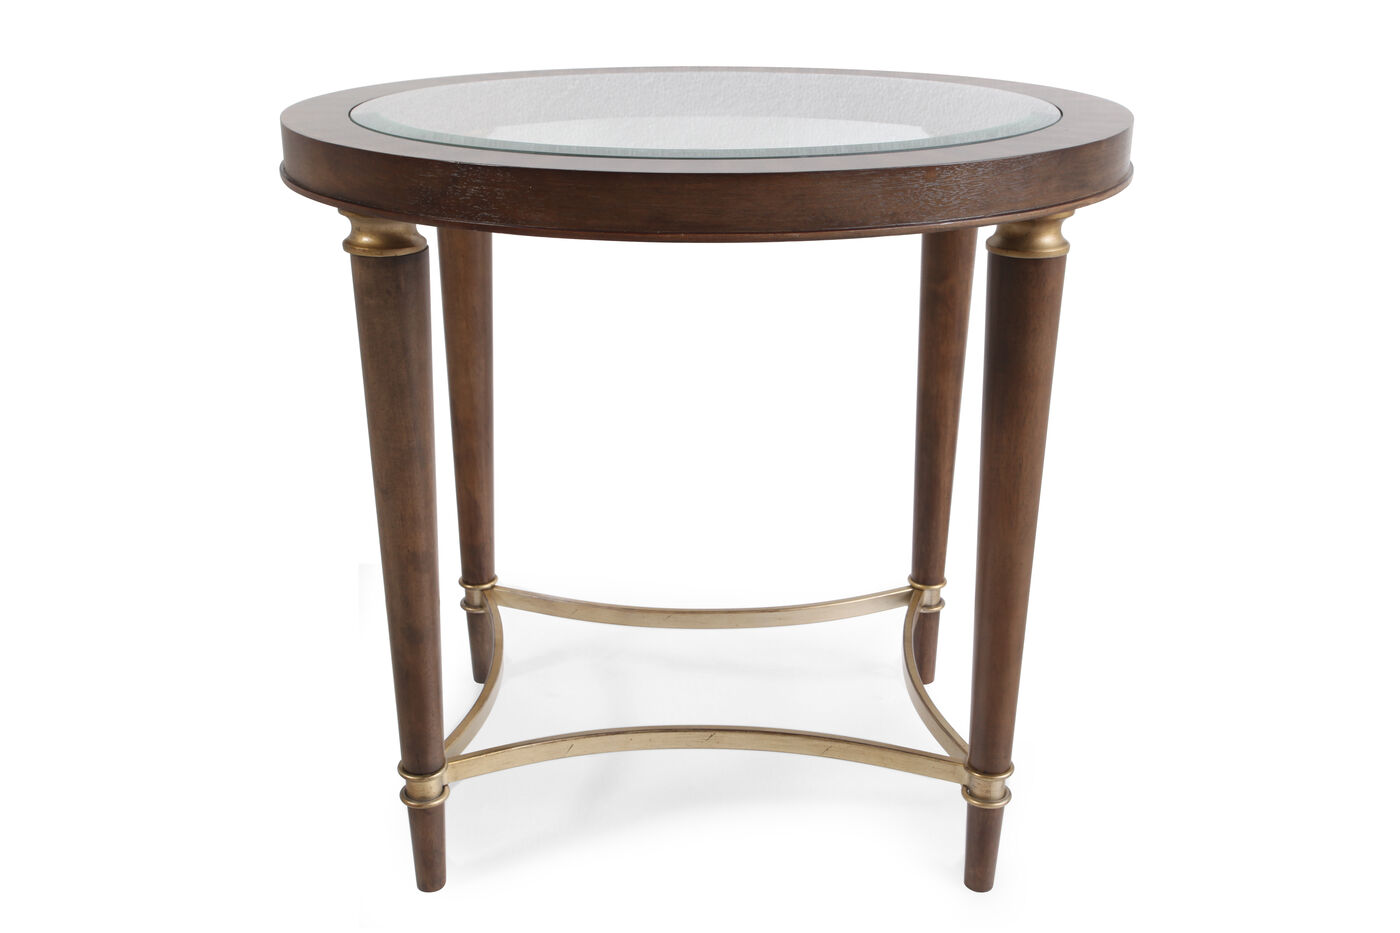 Contemporary Glass Inset Lamp Table In Brown Mathis Brothers Furniture